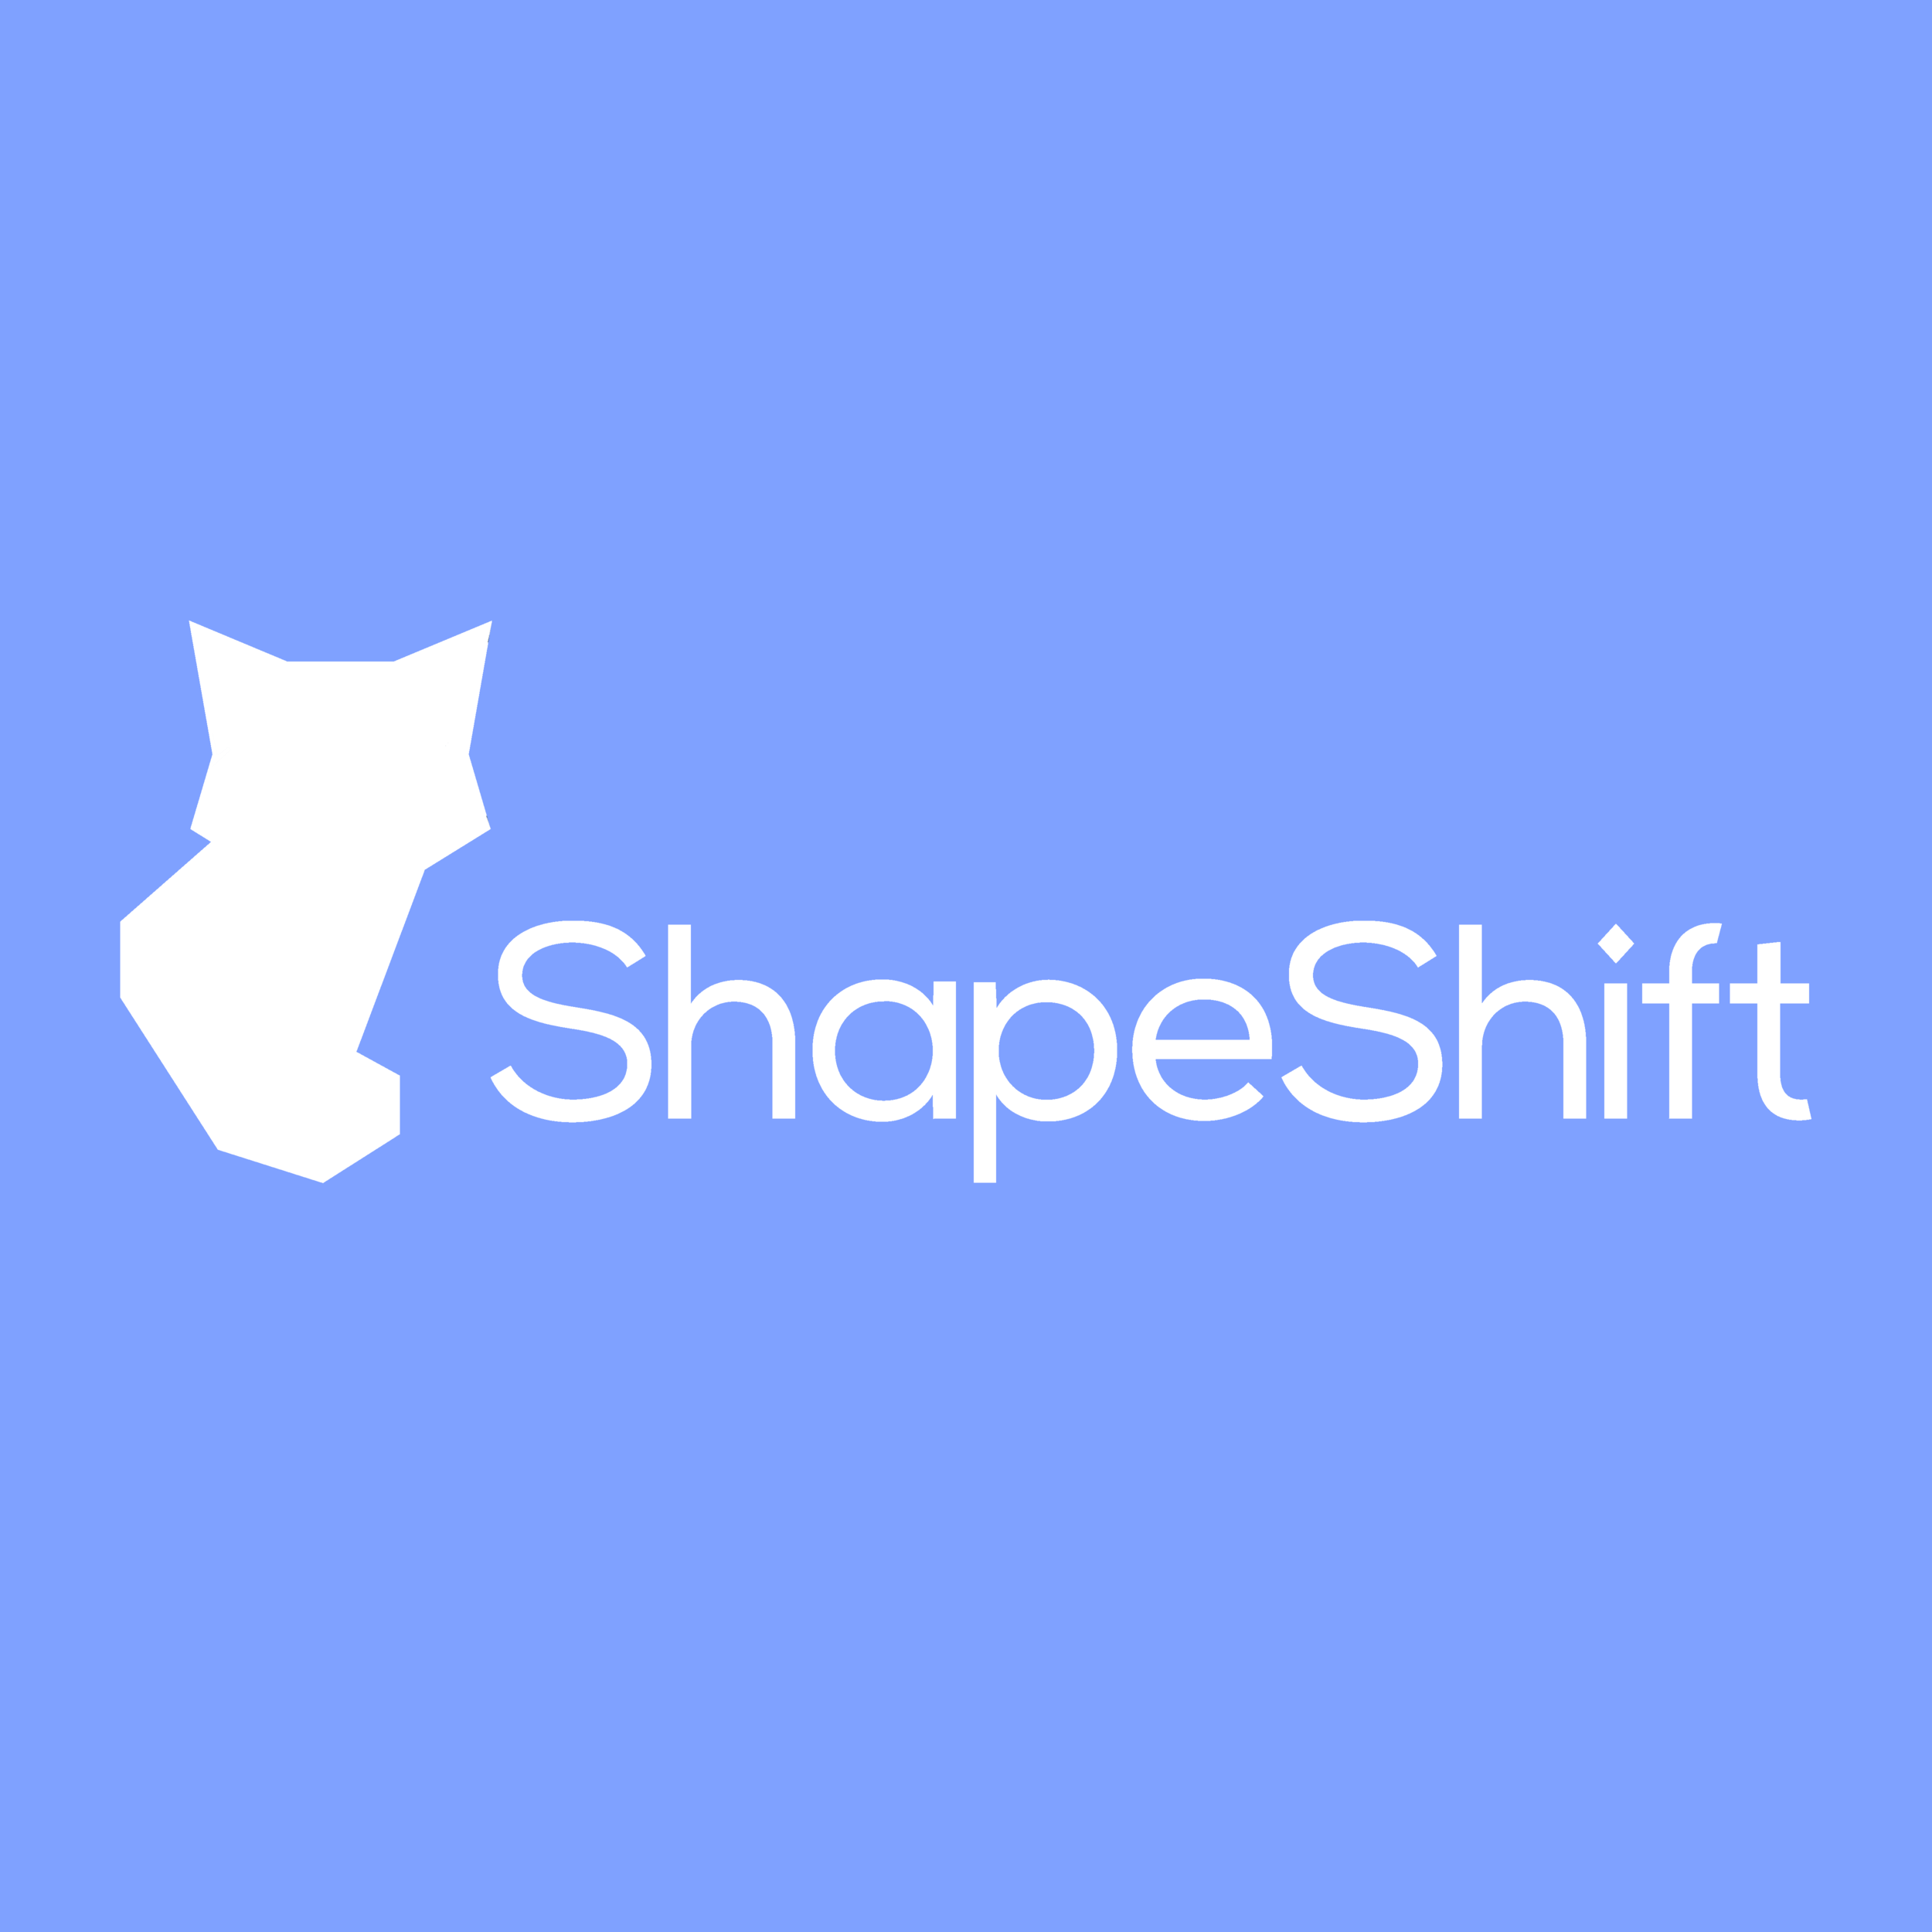 shapeshift-logo.png